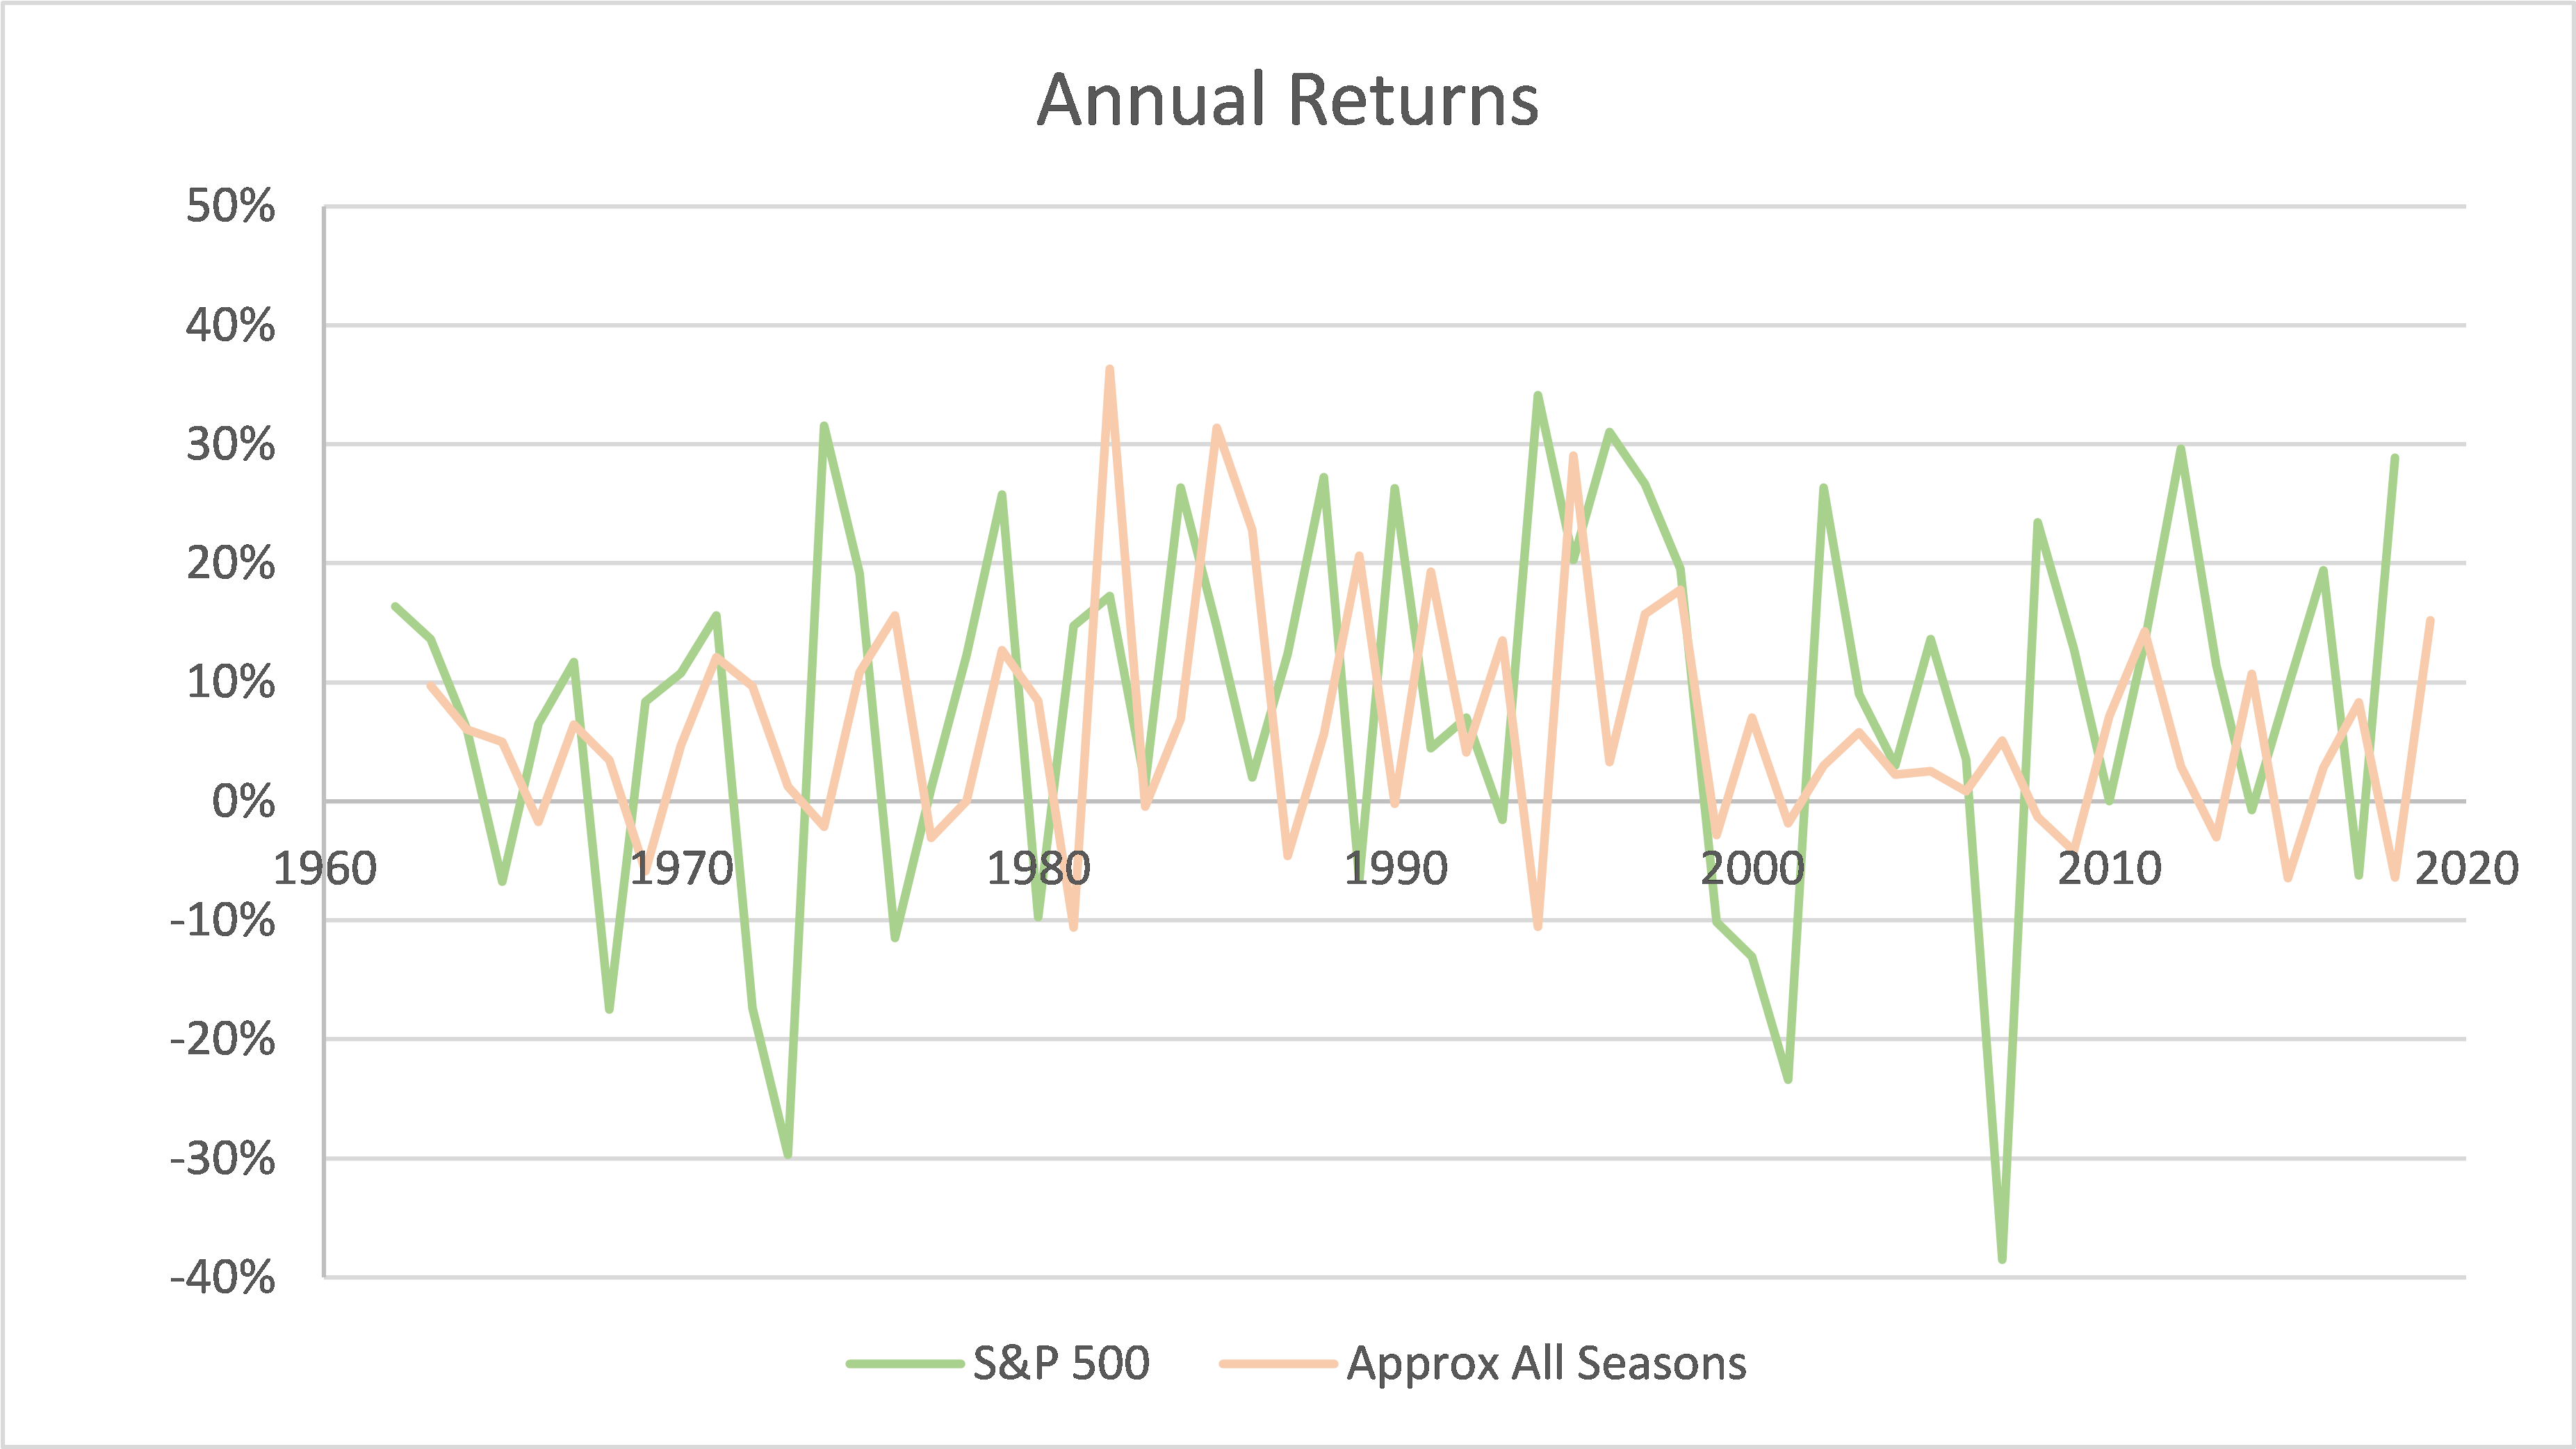 Annual returns on S&P 500 and All Seasons portfolio